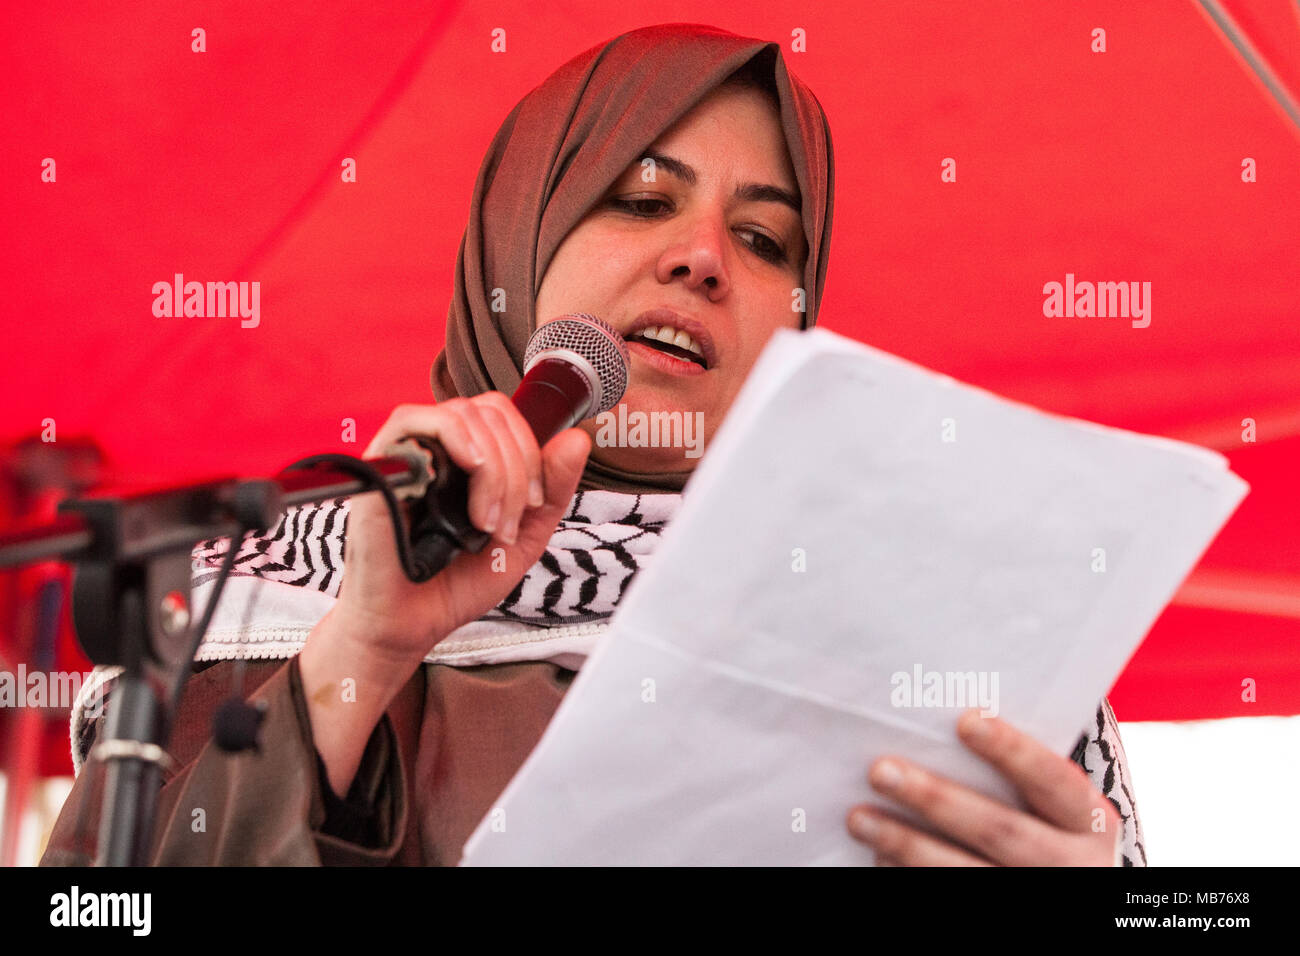 London, UK. 7th April, 2018. Raghad Al Tikriti of Muslim Association of Britain addresses hundreds of people at a rally outside Downing Street in solidarity with Palestinians attending the Great March of Return in Gaza and in protest against the killing there by Israeli snipers using live ammunition of at least 27 unarmed Palestinians and the injury of hundreds more. Credit: Mark Kerrison/Alamy Live News Stock Photo